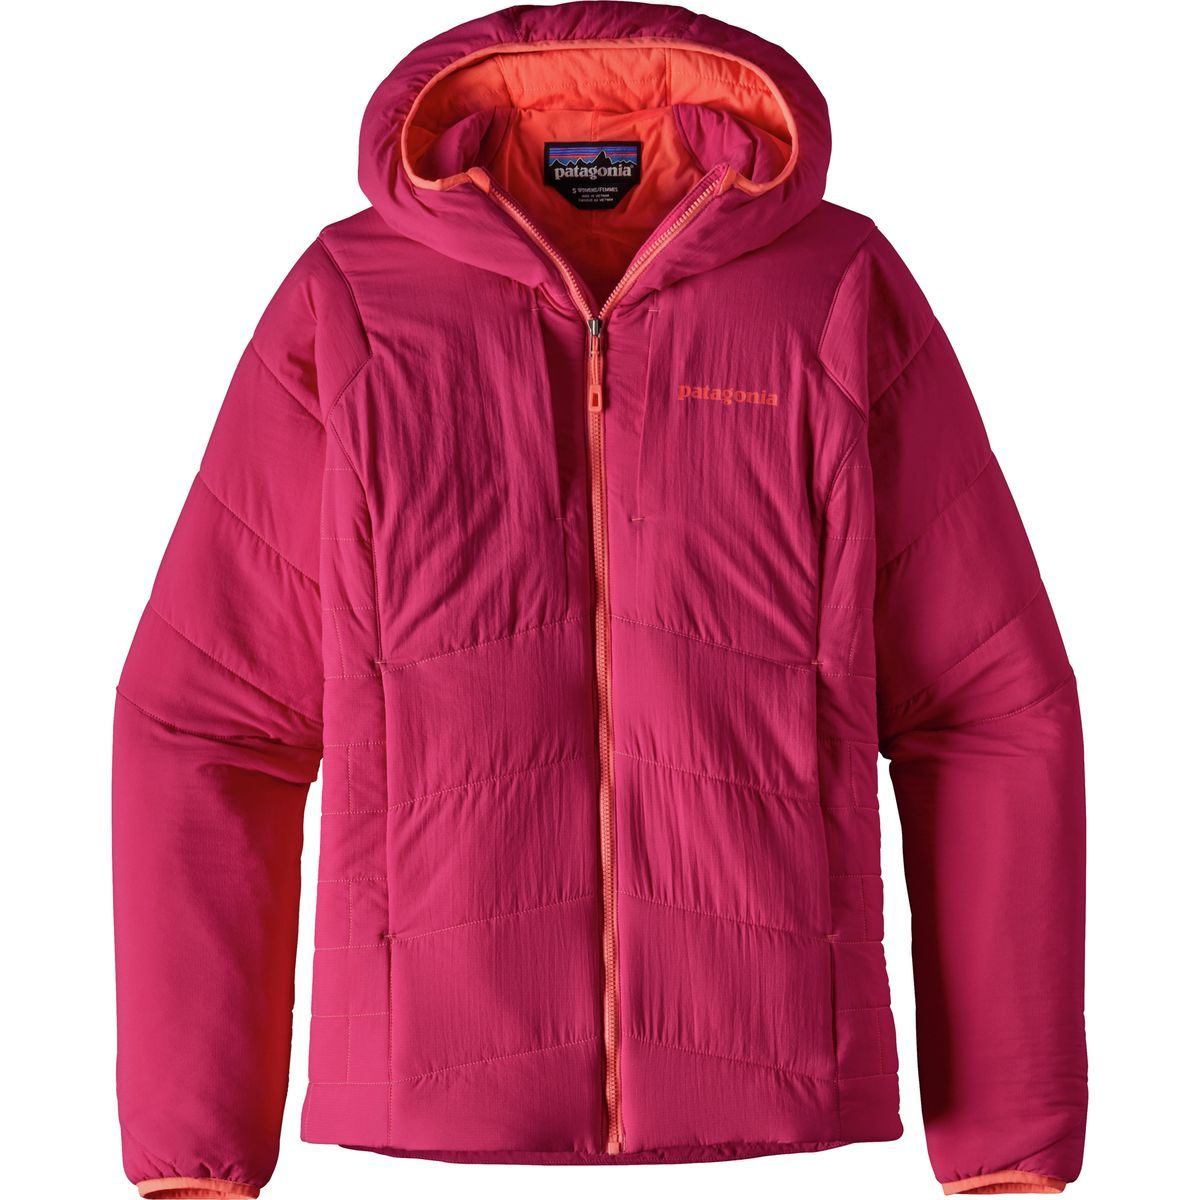 Patagonia NanoAir Hooded Insulated Jacket Craft Pink M